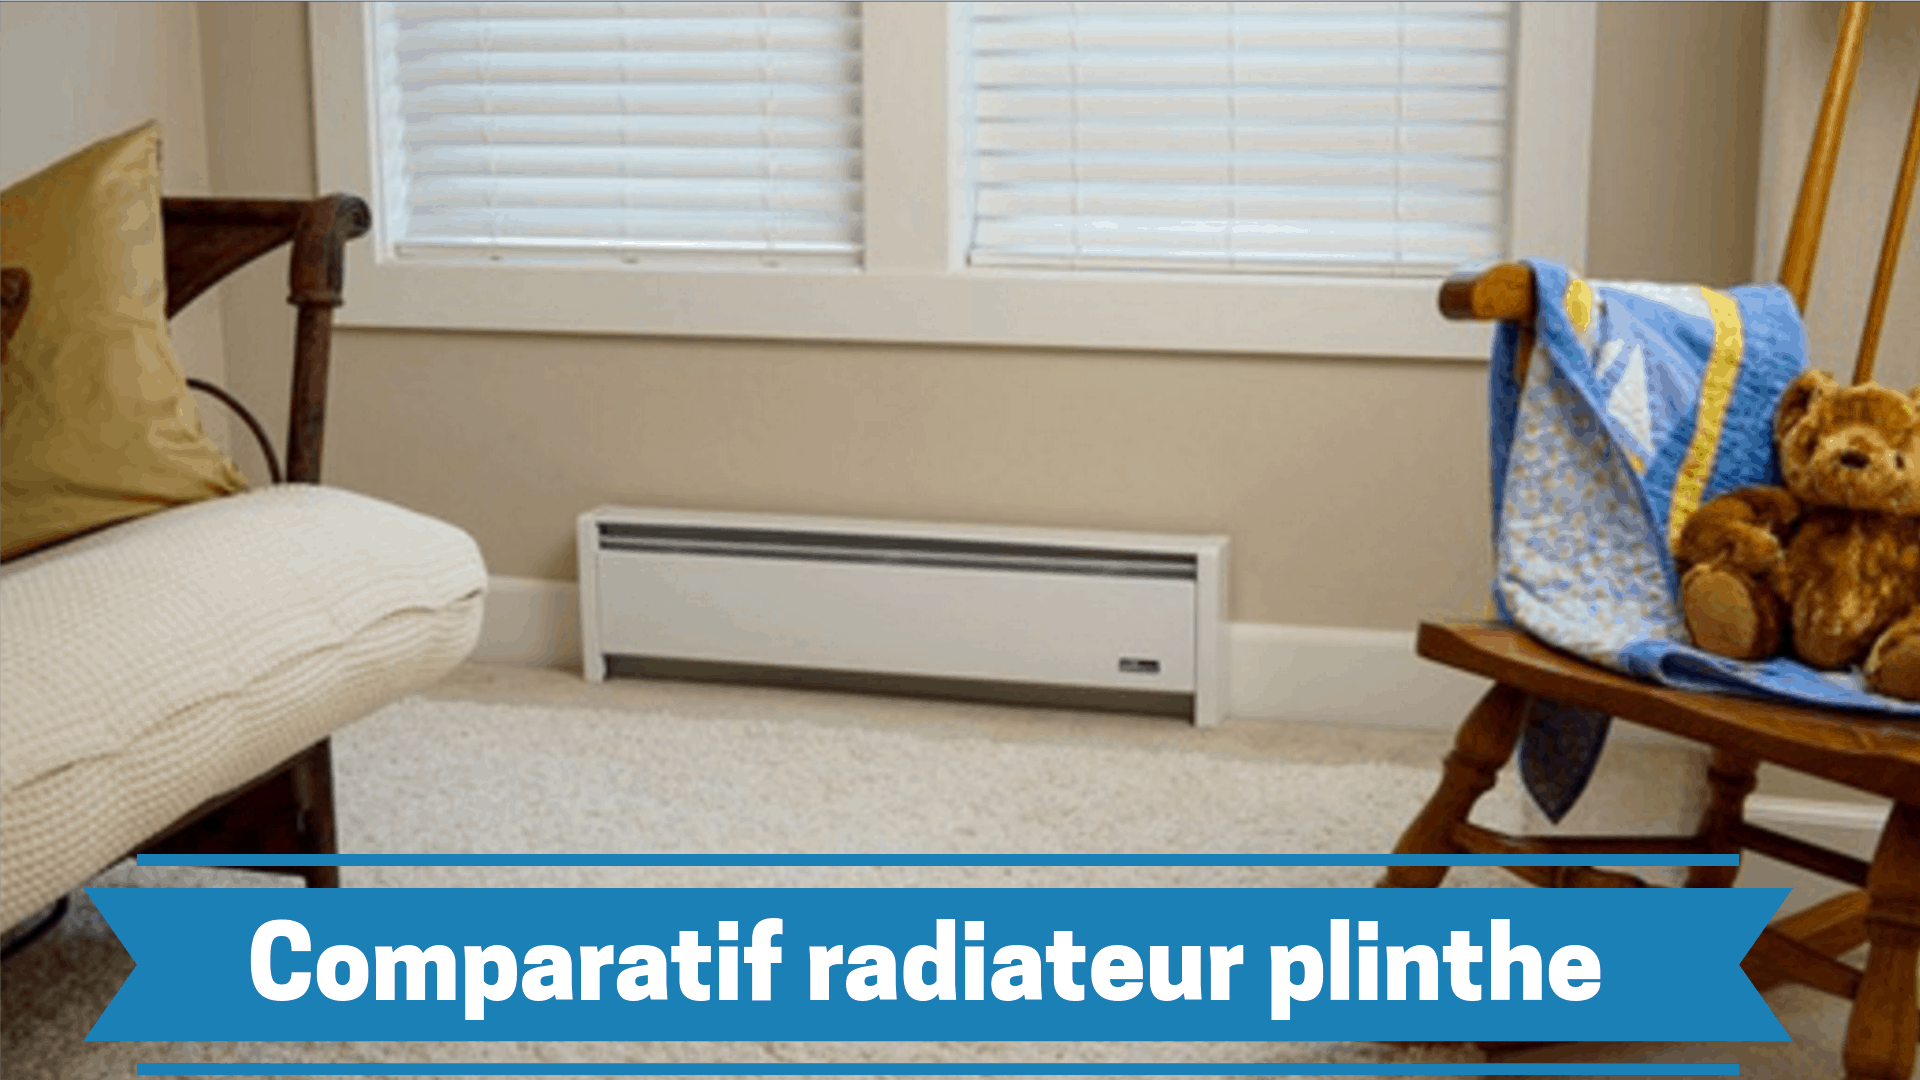 meilleur radiateur plinthe avis prix comparatif guide d 39 achat 2018. Black Bedroom Furniture Sets. Home Design Ideas